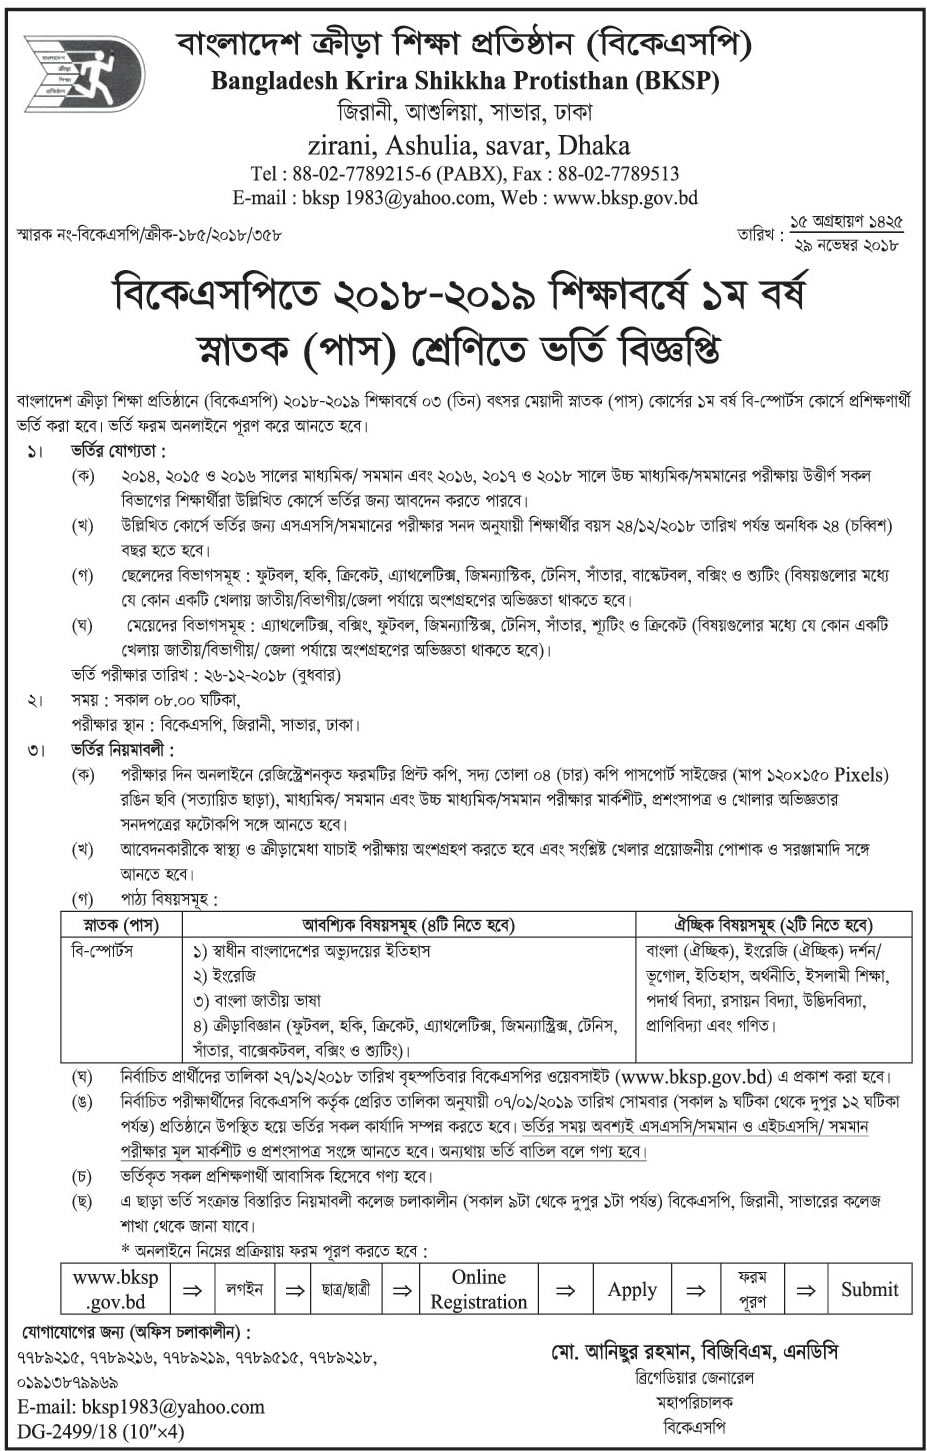 BKSP 1st year Bachelor (Pass) Admission Test Circular 2018-2019